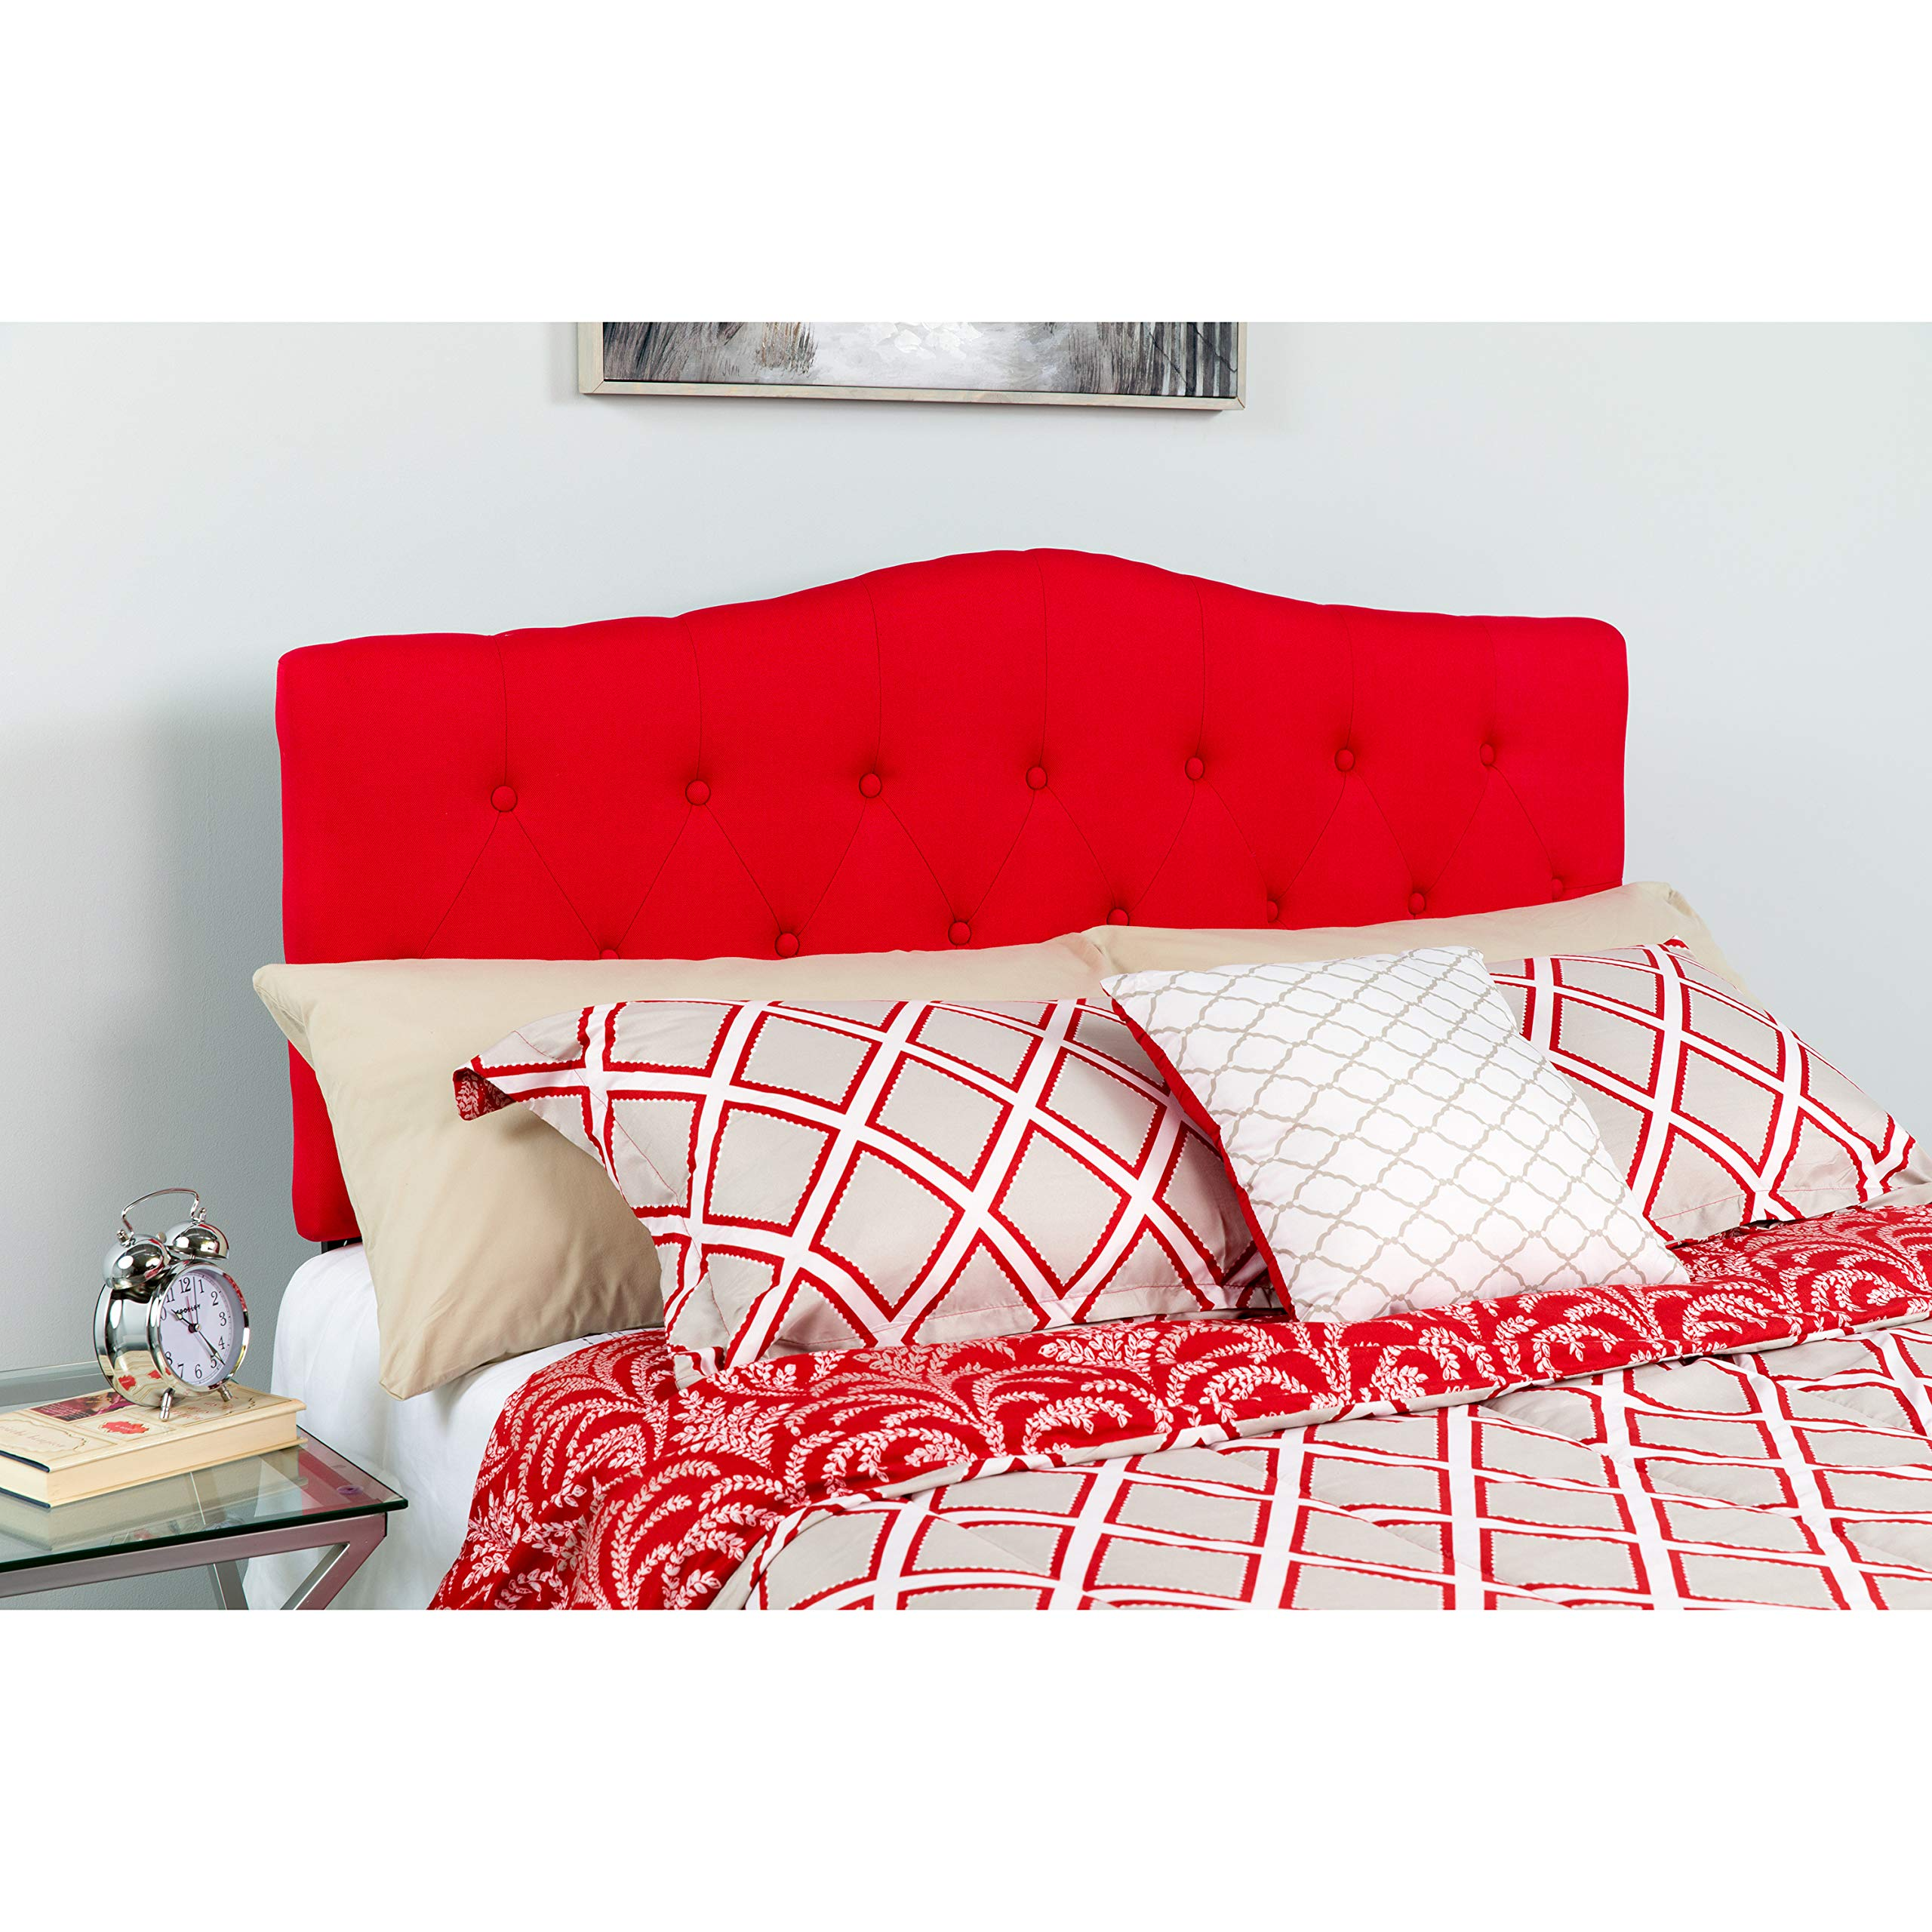 Flash Furniture Cambridge Tufted Upholstered Queen Size Headboard in Red Fabric